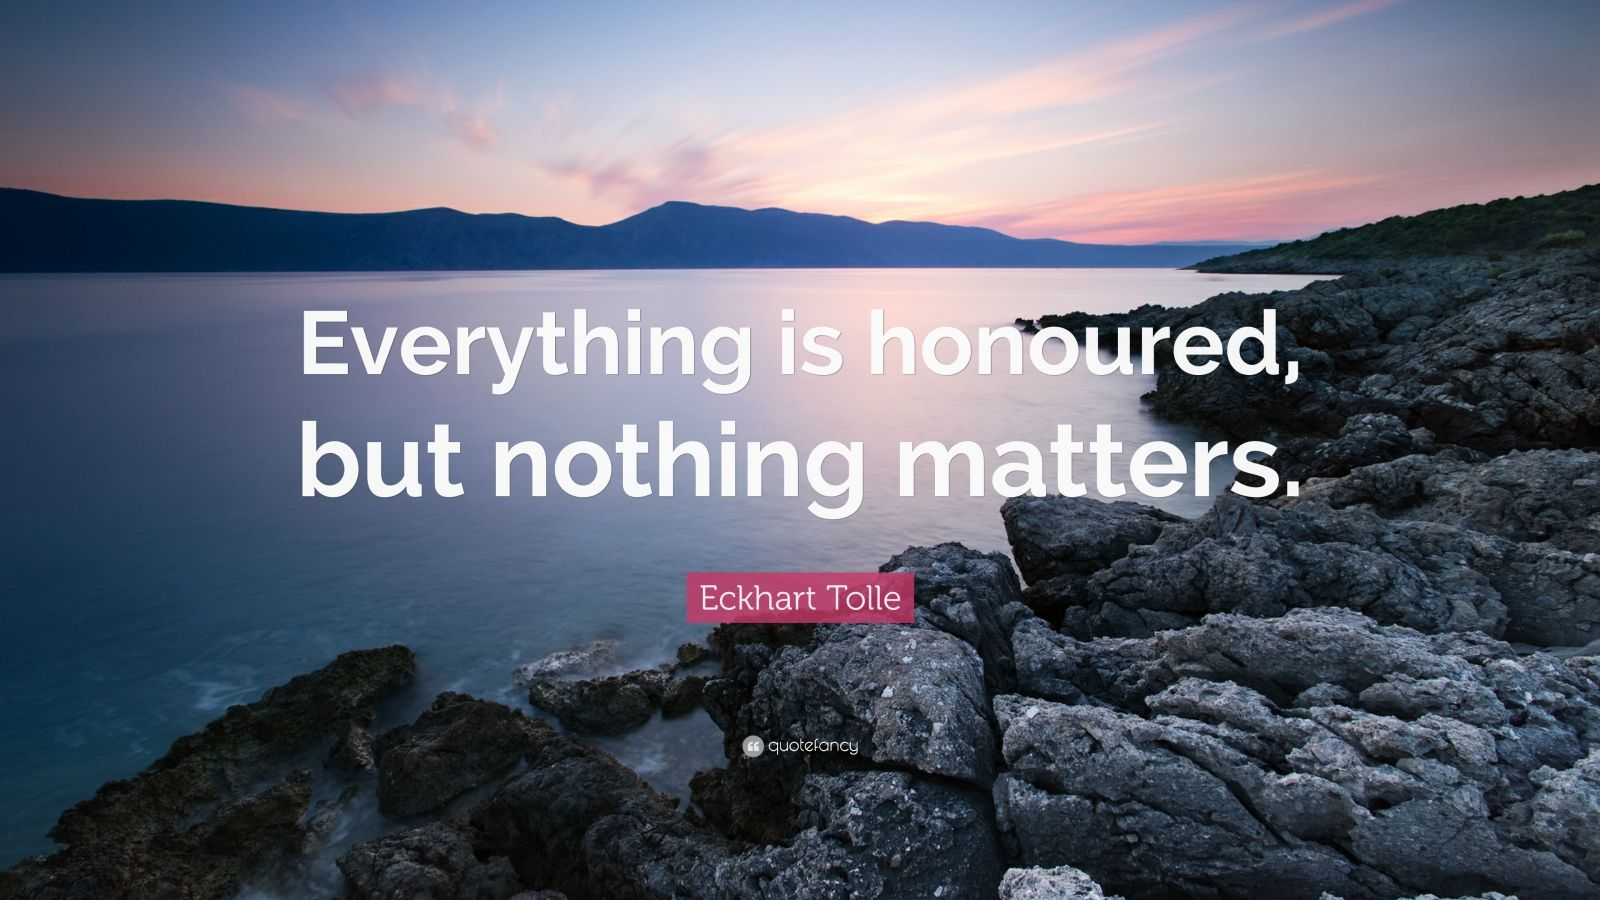 """Eckhart Tolle Quote: """"Everything is honoured, but nothing matters."""""""